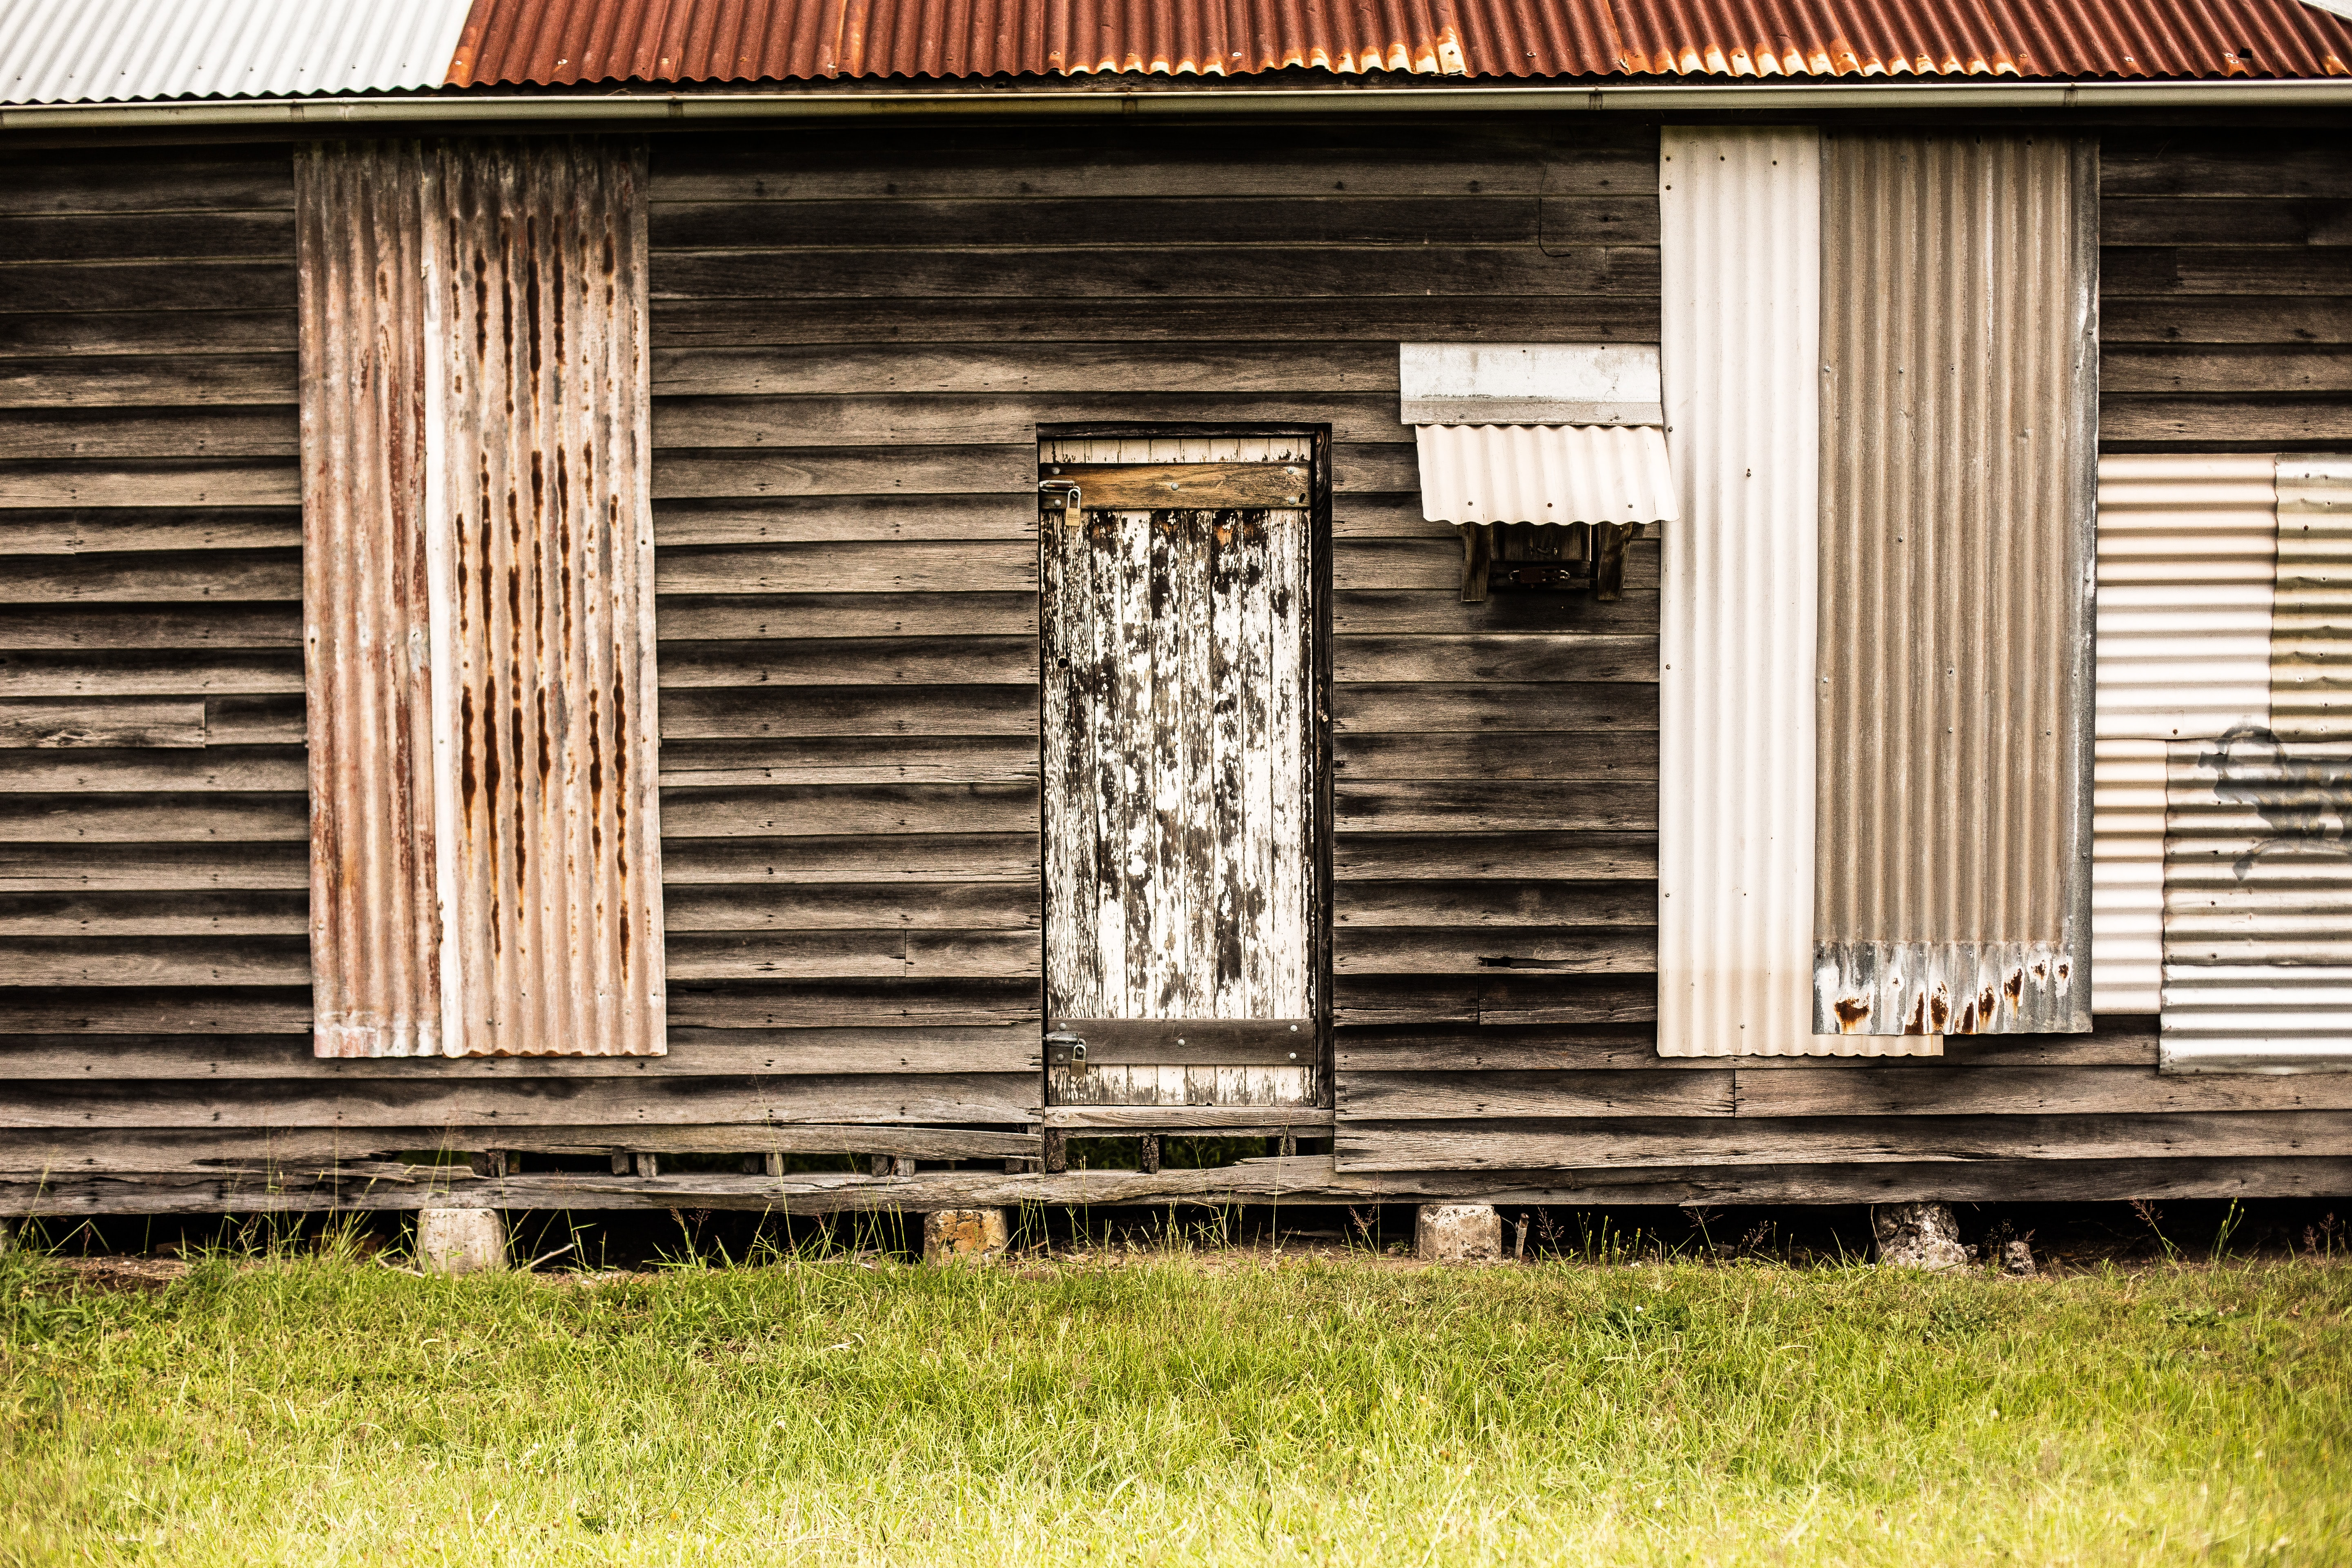 Wooden cabin with tin sheet patches and a decaying door in a grassy lawn